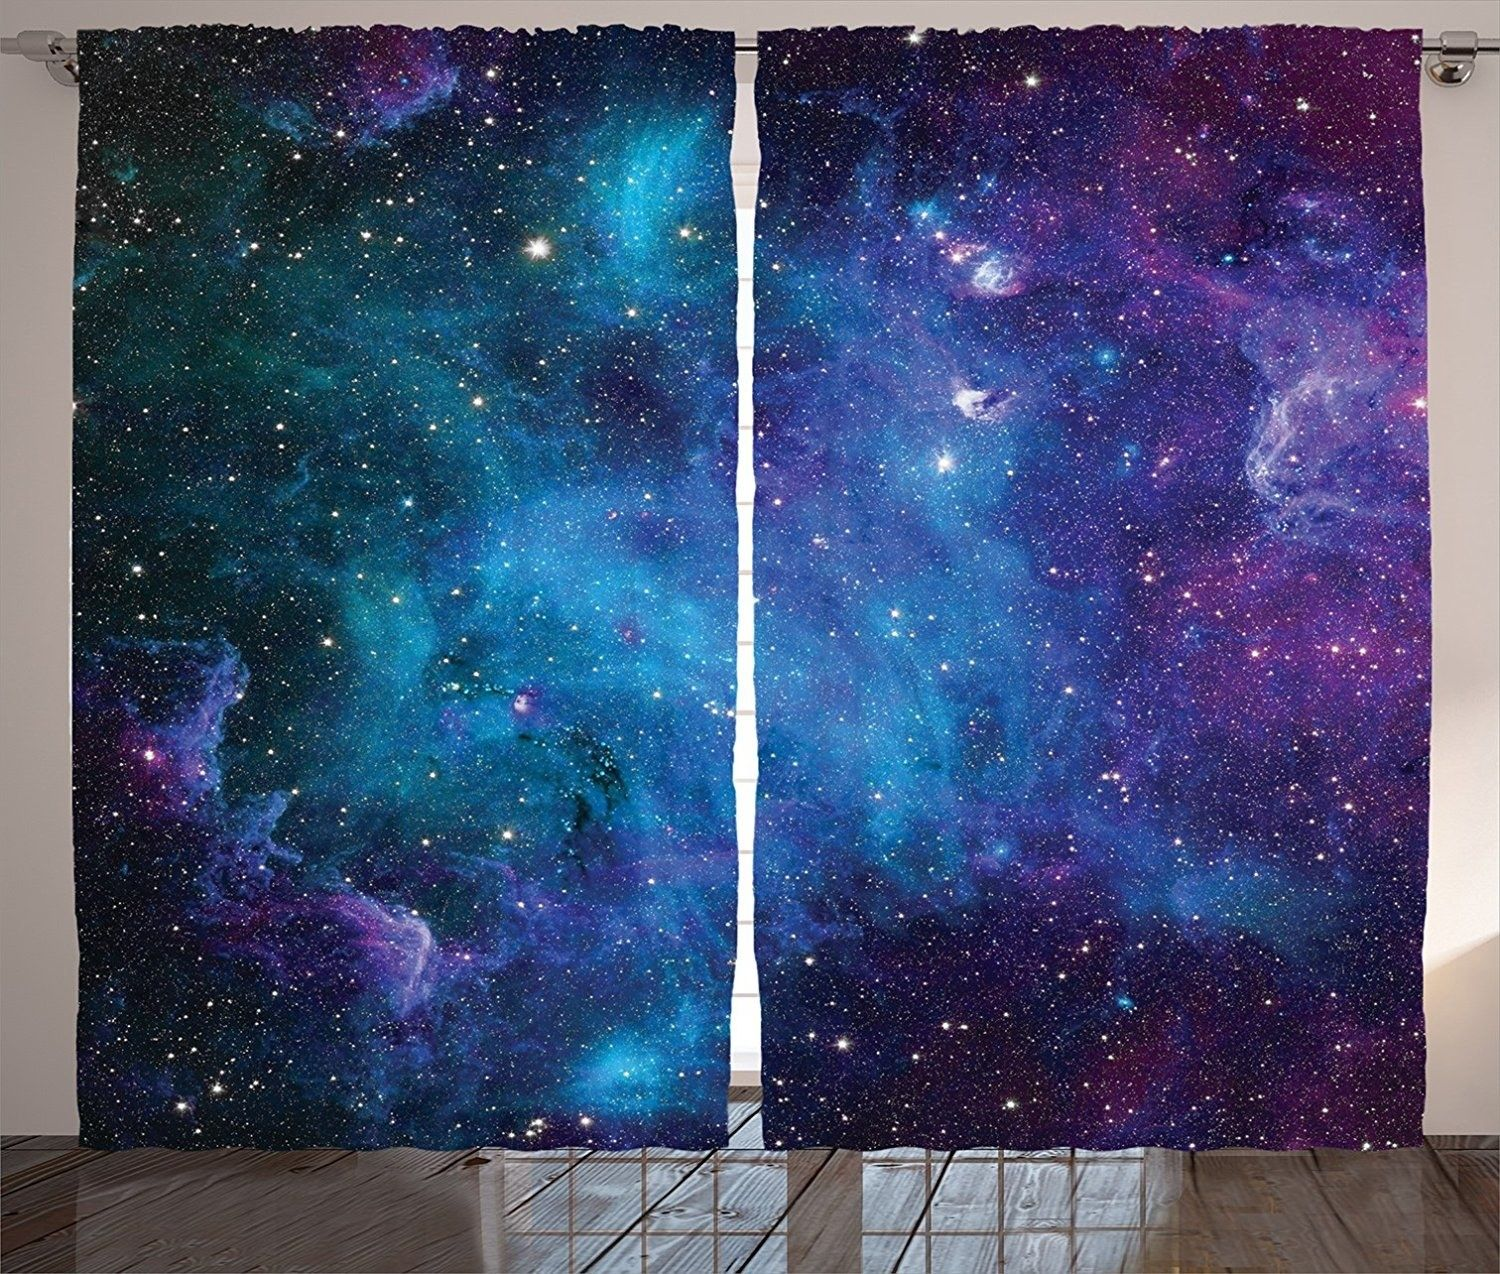 pieces of decor for people who would rather live in outer space